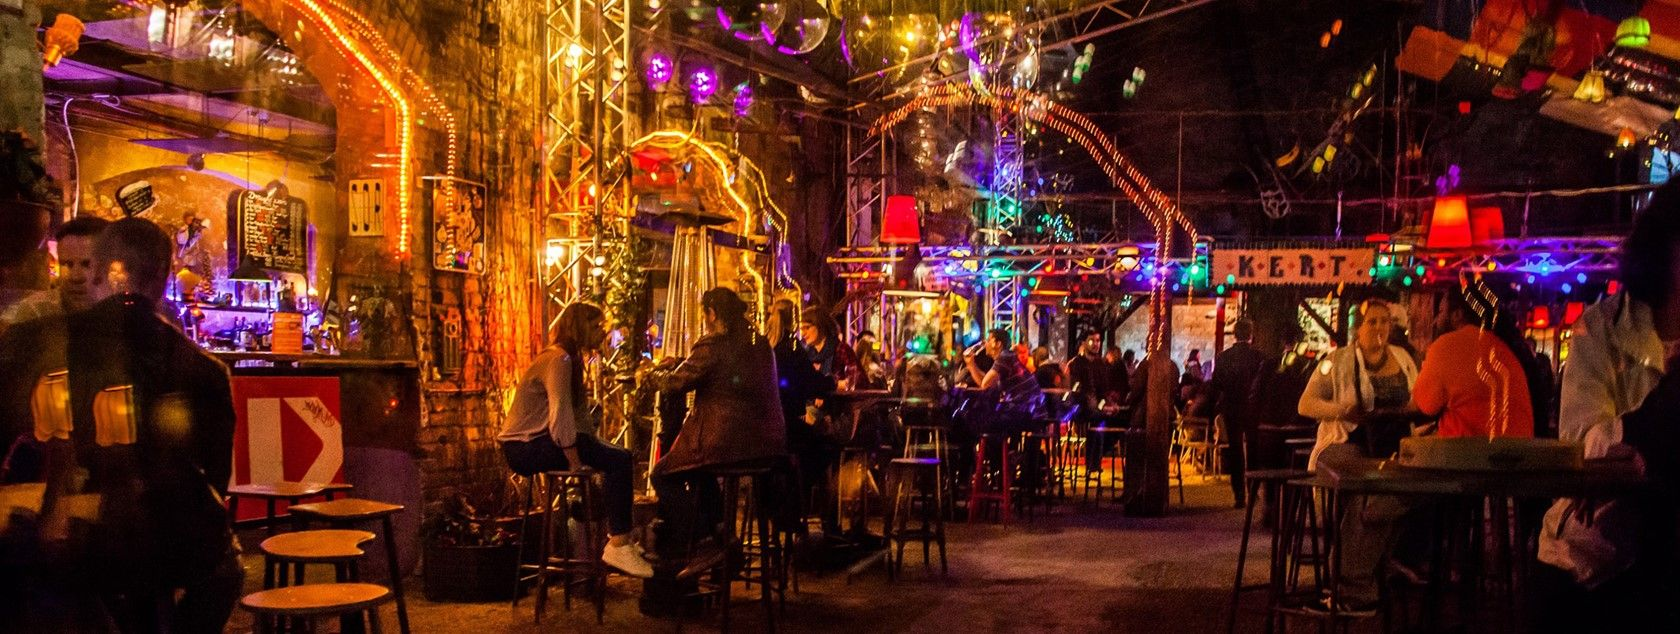 The Top 10 Ruin Bars In Budapest | Destination Guides ...